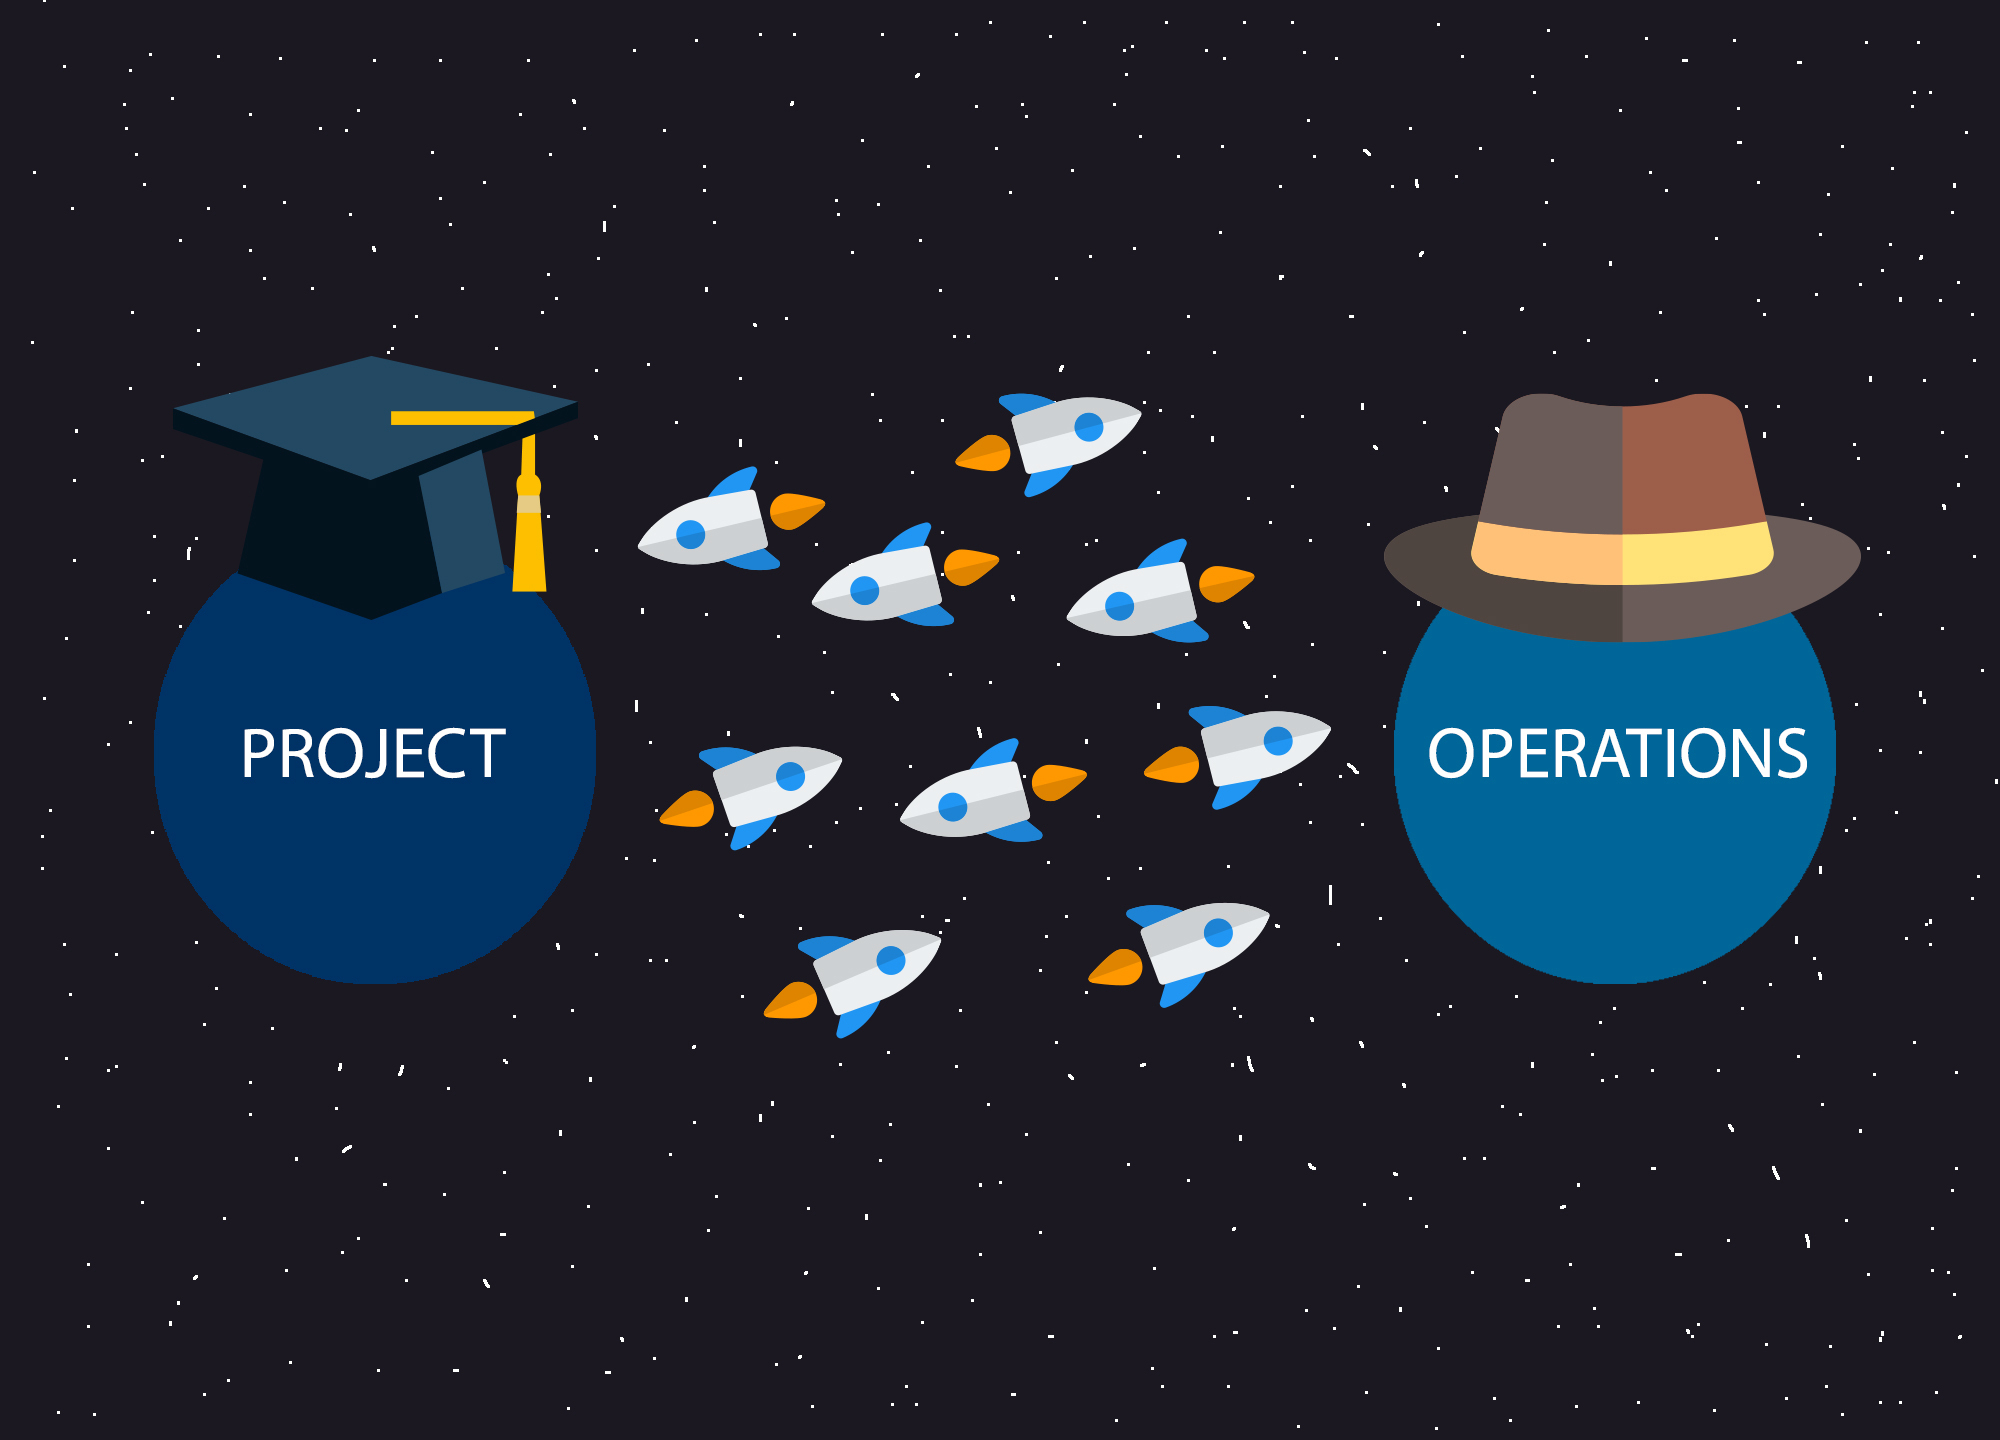 How do Operations Management similar or differ to Project Management?